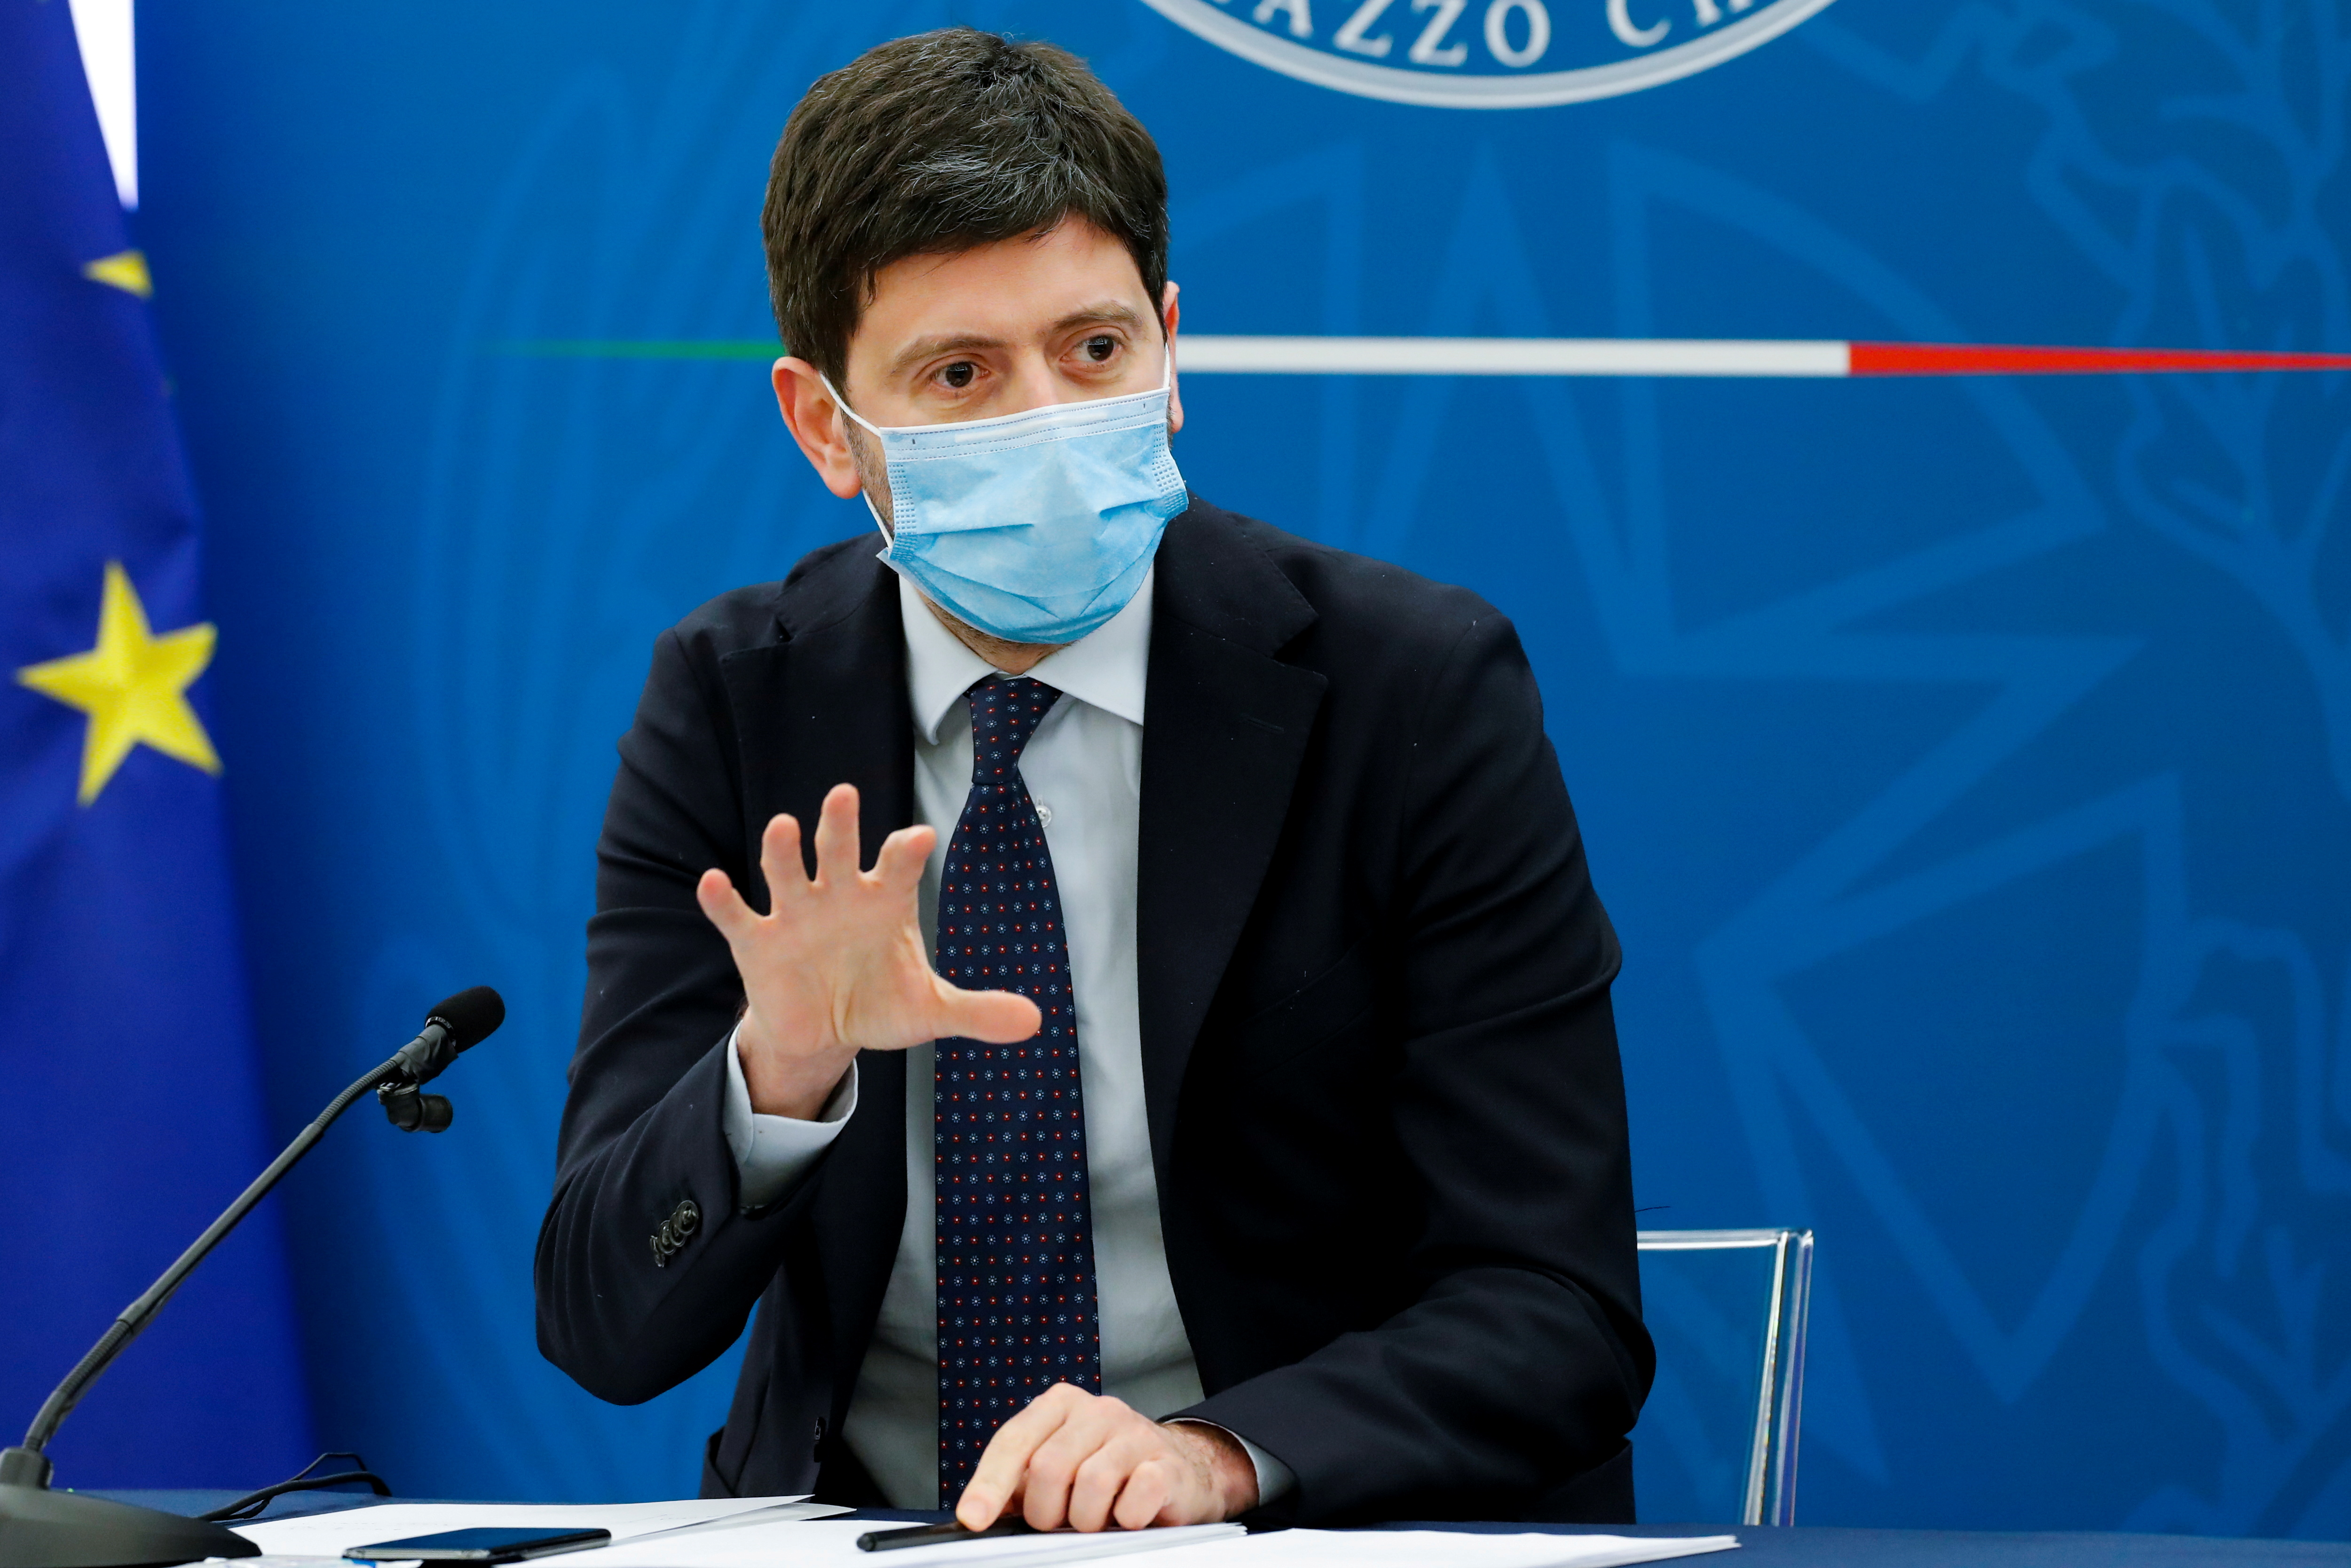 Italy's Health Minister Roberto Speranza gestures as he speaks during a news conference where Italy's Prime Minister Mario Draghi (not pictured) is expected to map out the country's next moves in loosening coronavirus disease (COVID-19) restrictions, in Rome, Italy, April 16, 2021. REUTERS/Remo Casilli/Pool/File Photo